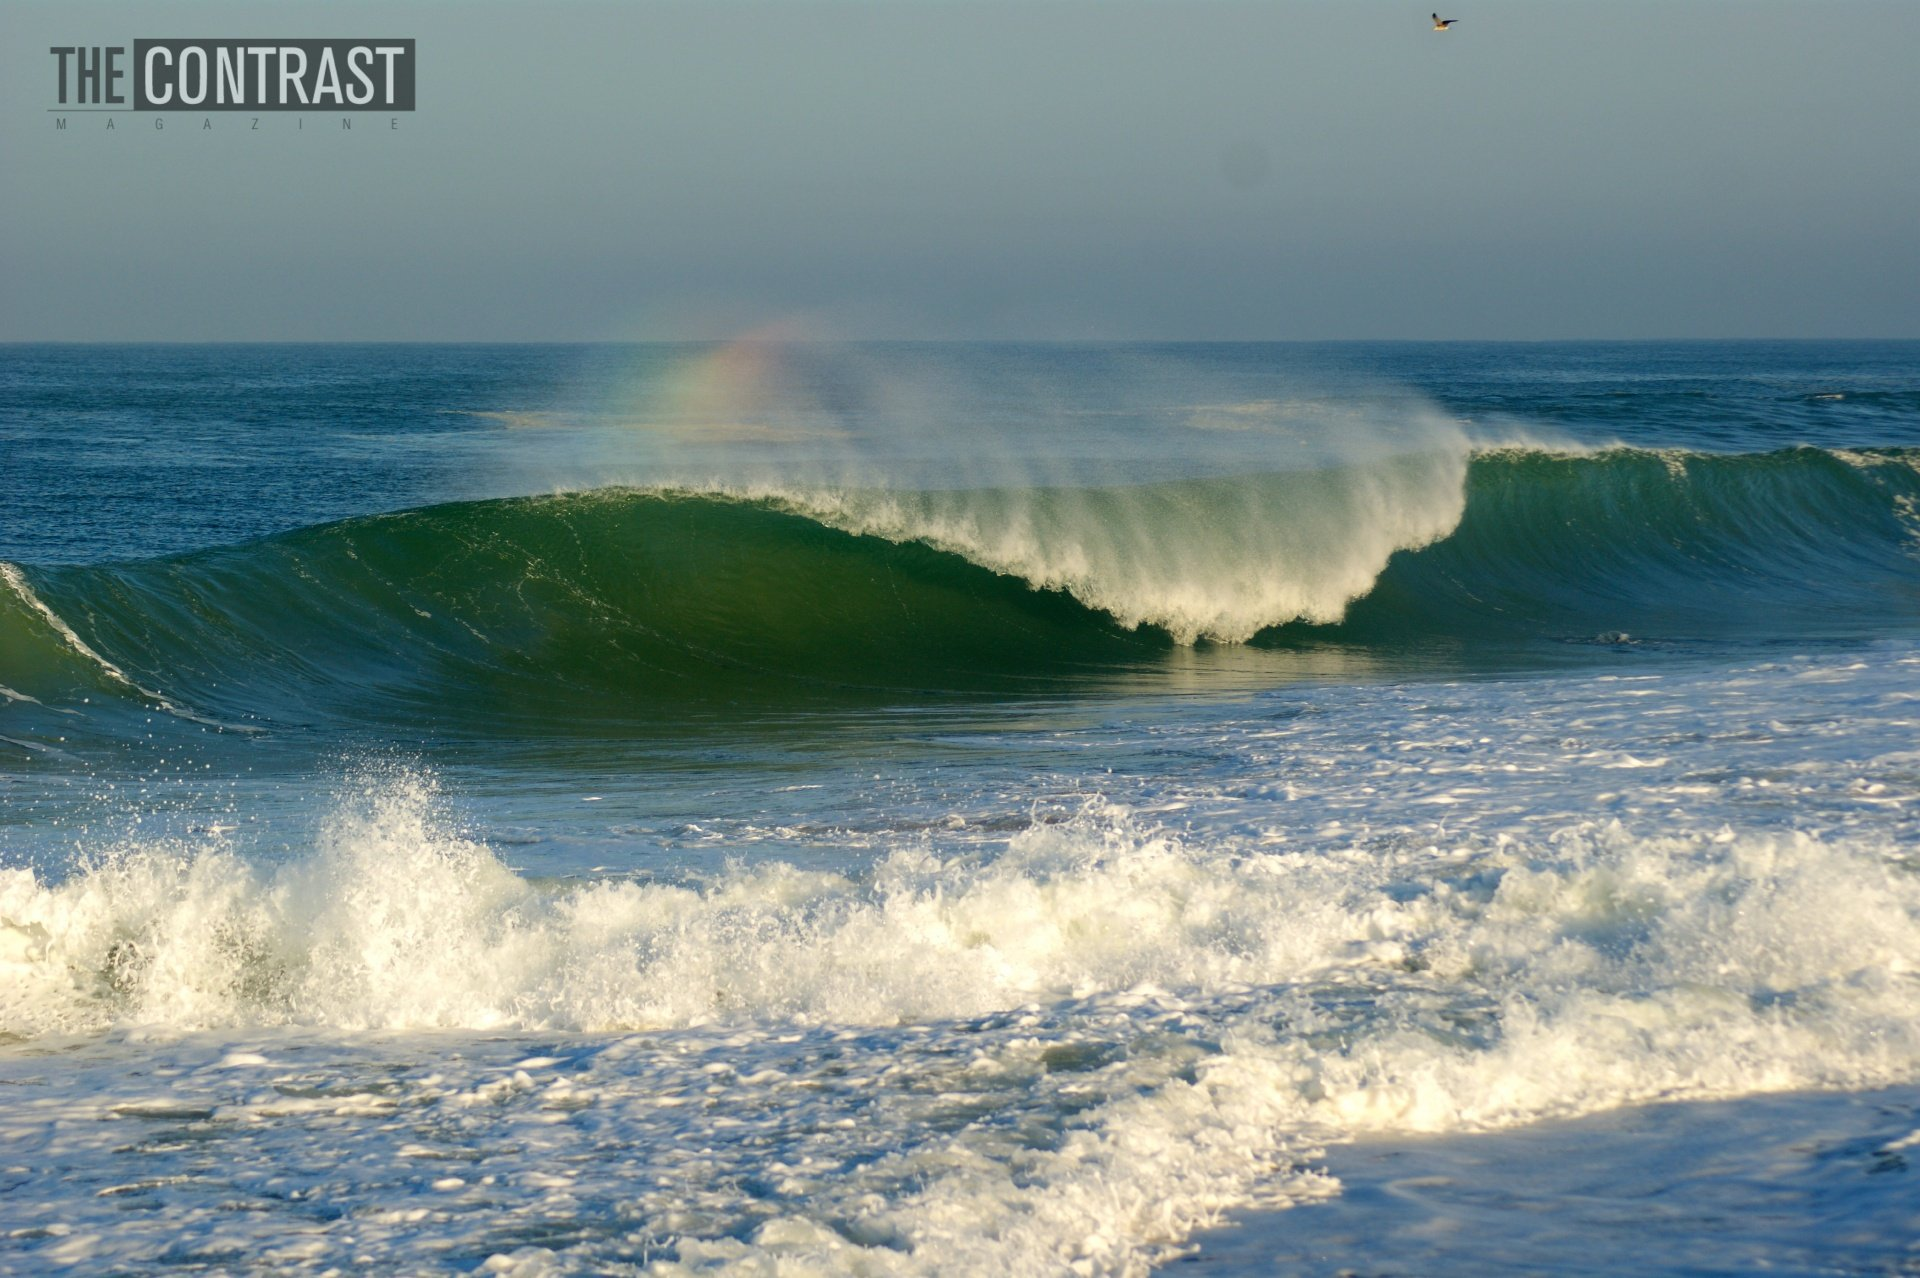 BONZERMAN 's photo of Hossegor (La Graviere)